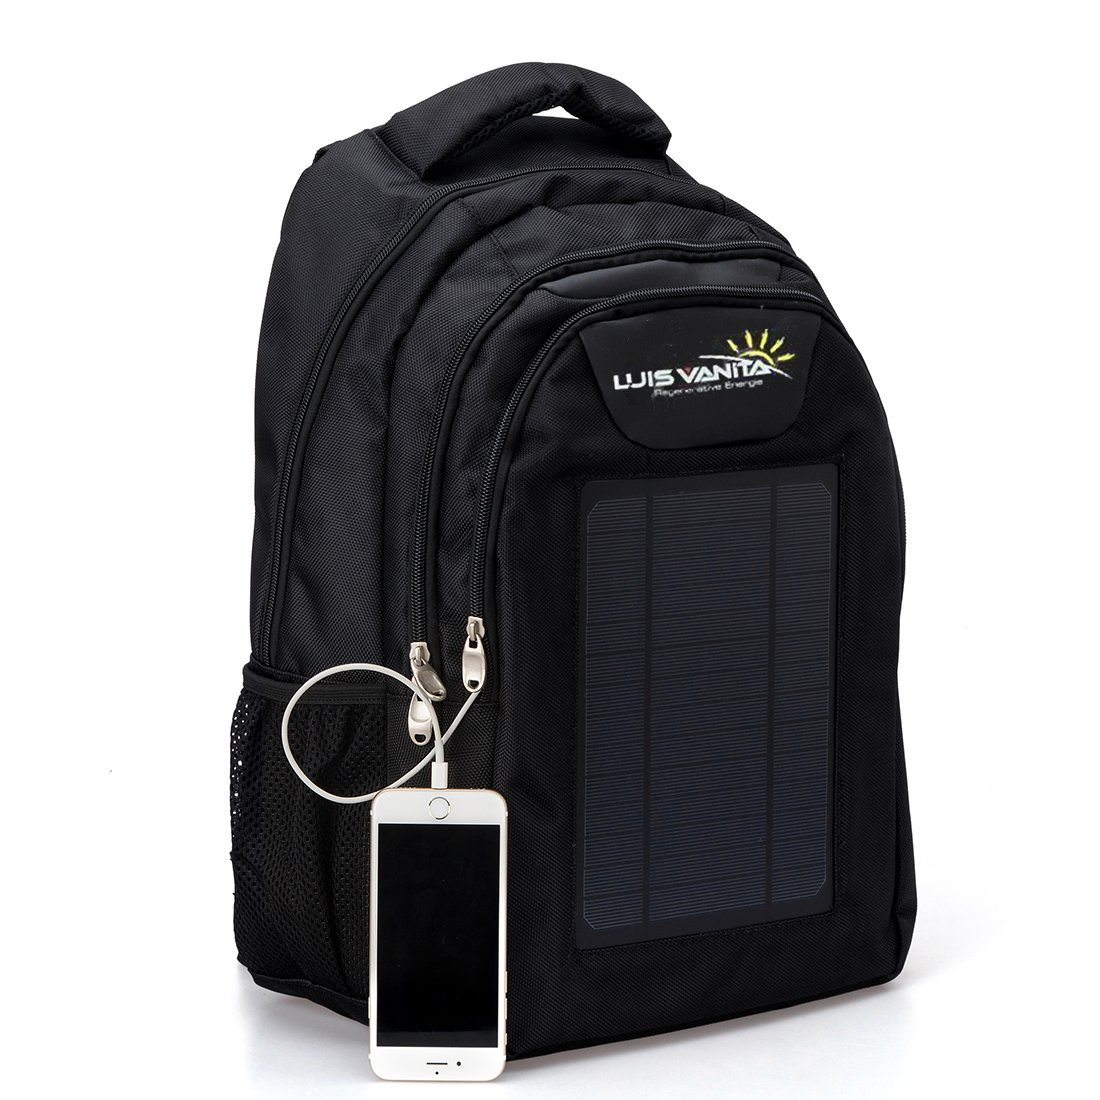 Luisvanita Eco Solar Charger Backpack